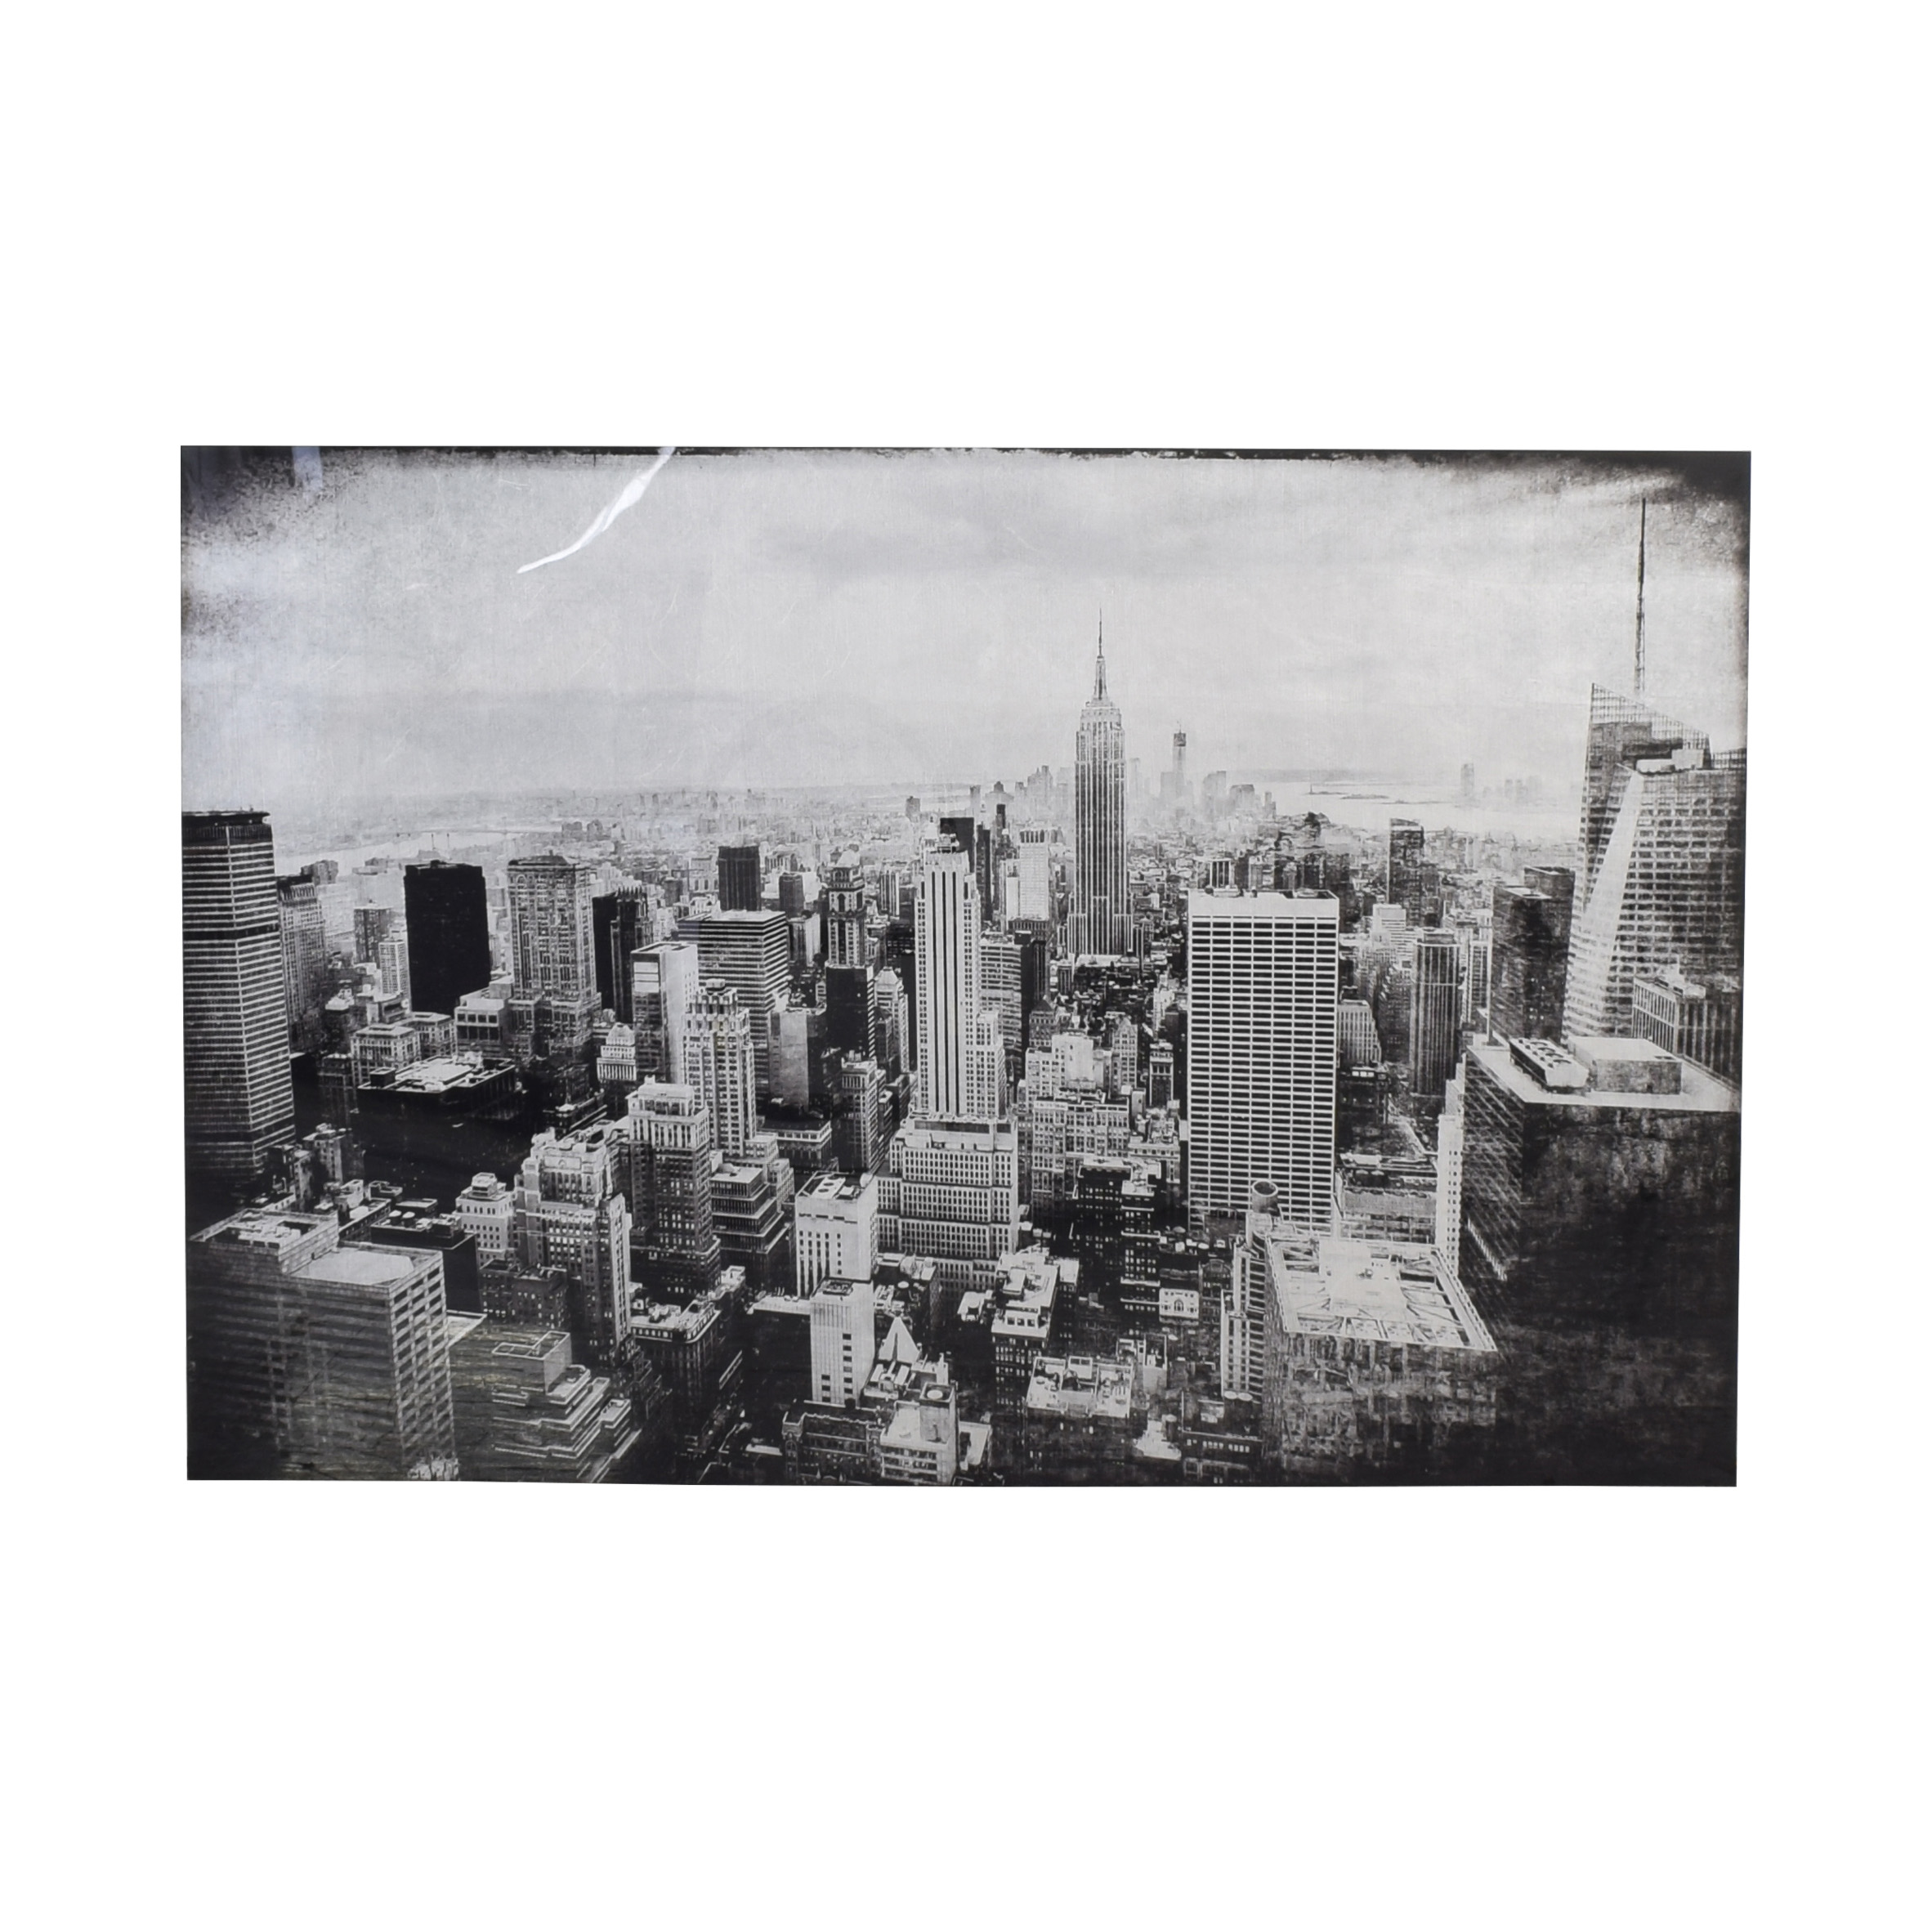 Jensen-Lewis Jensen-Lewis The City that Never Sleeps Wall Art for sale